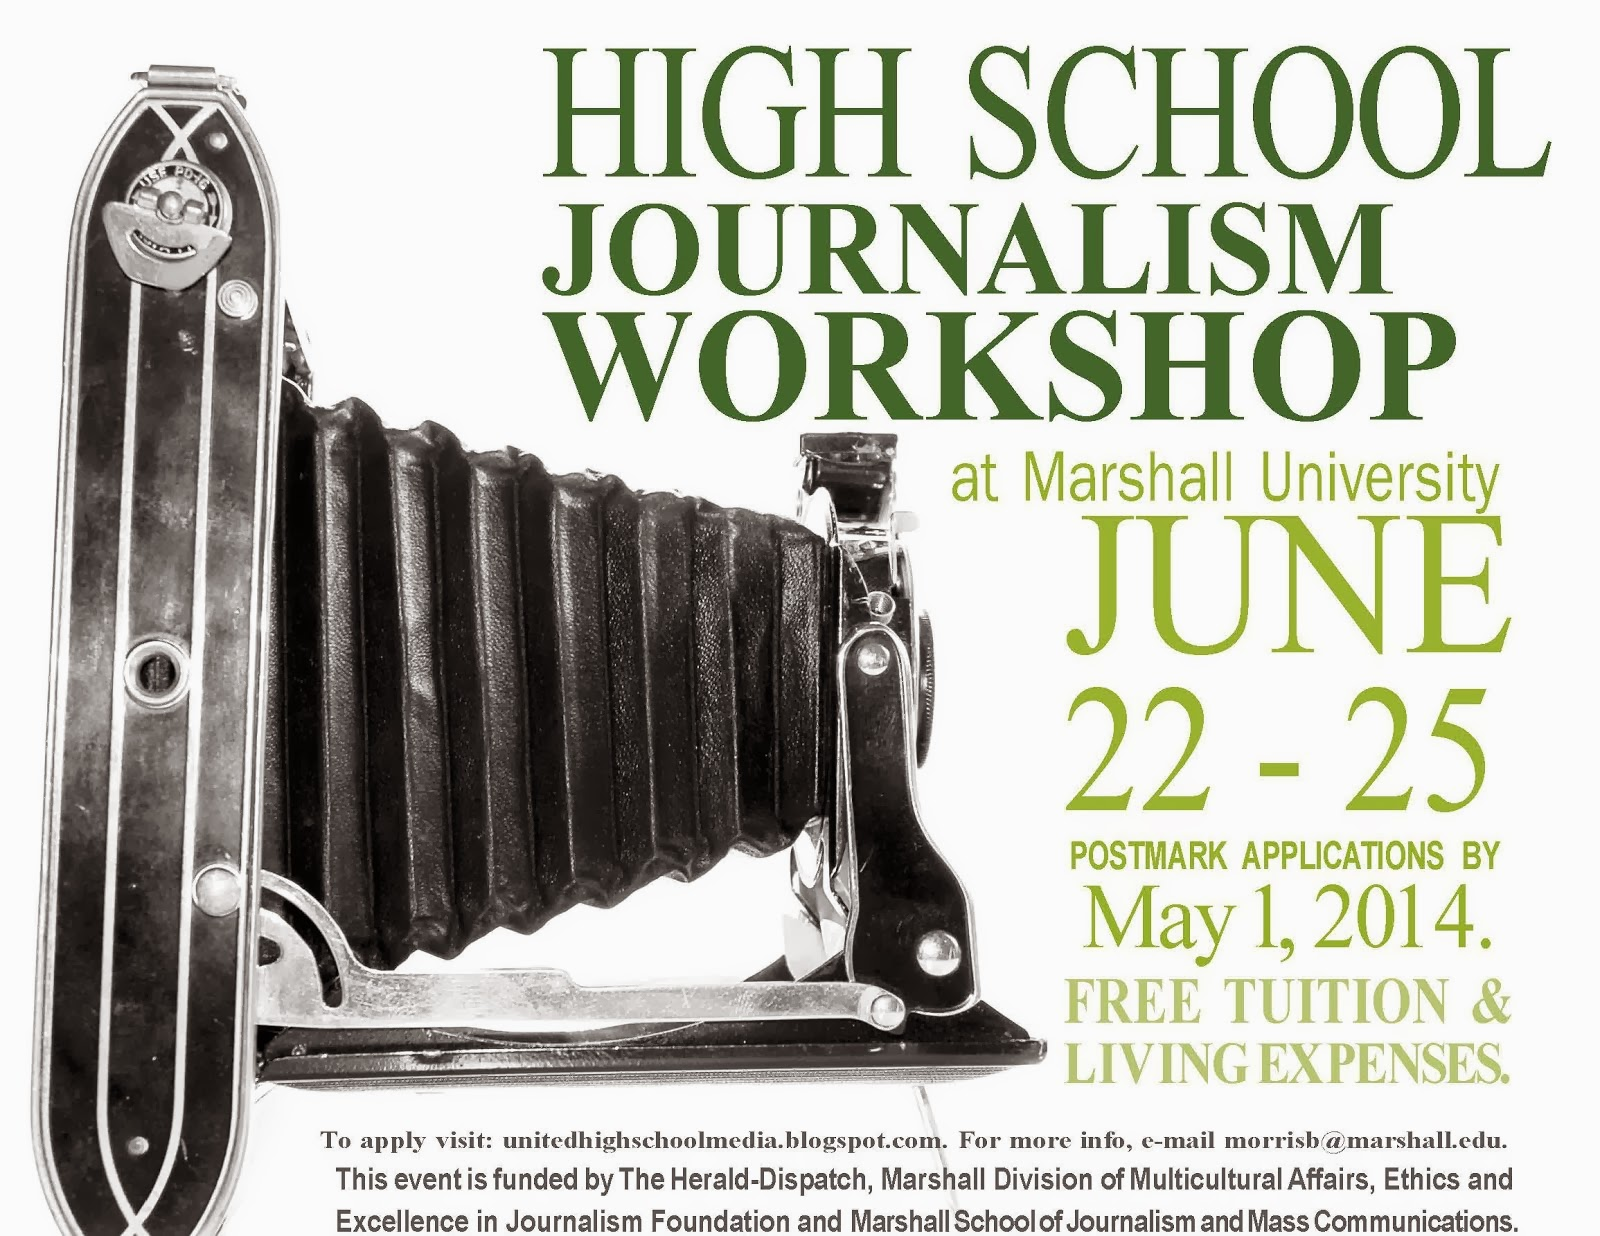 Apply now for 2014 High School Journalism Workshop